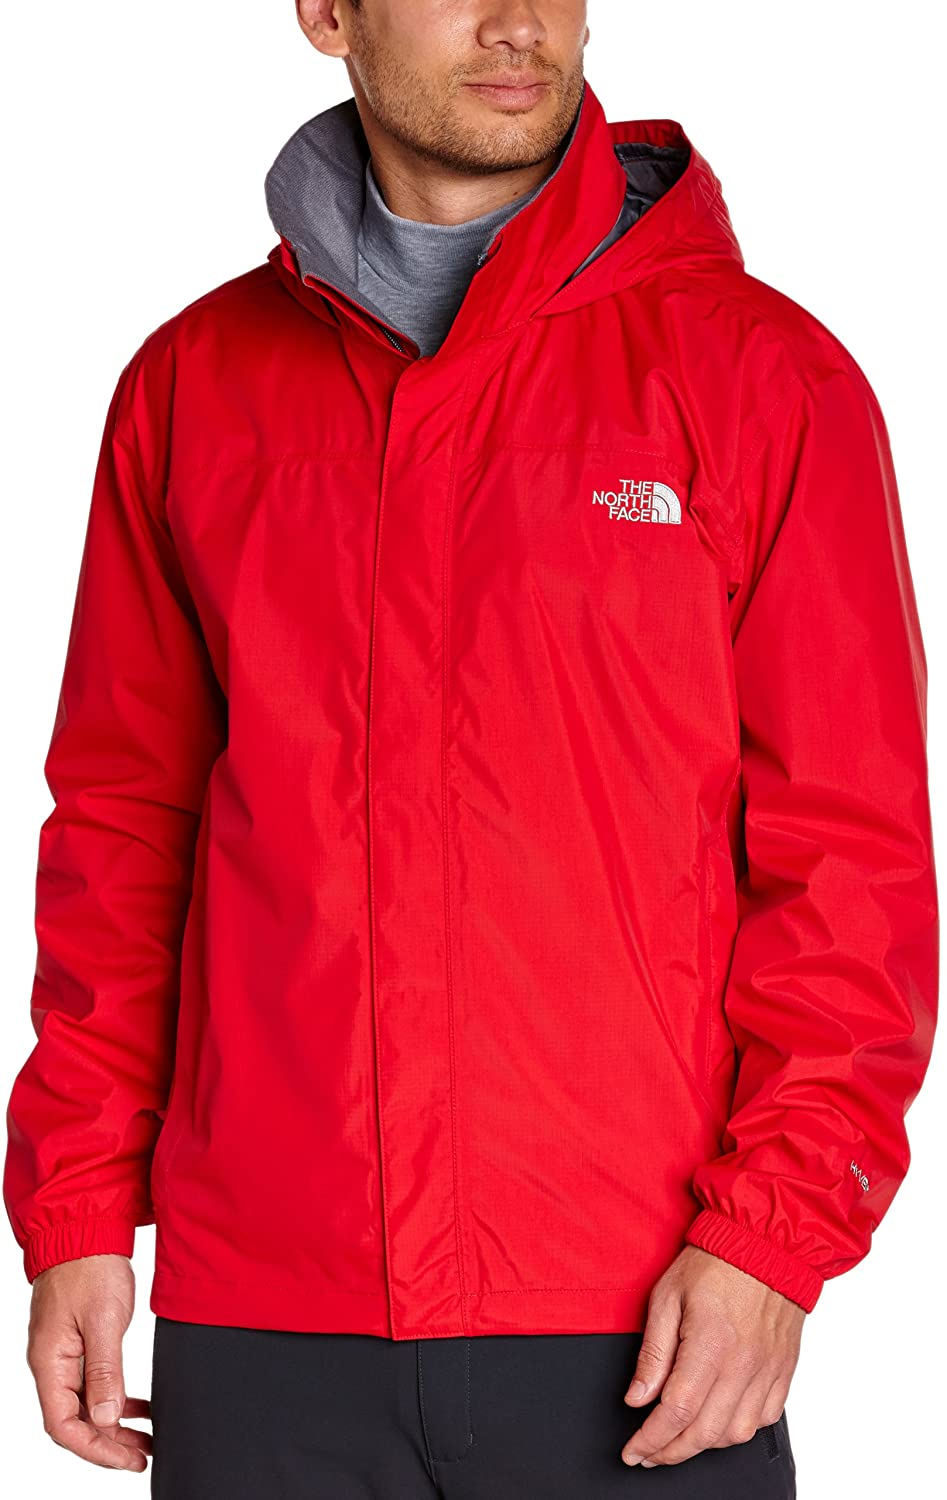 The North Face Mens Resolve Jacket, TNF Red, 2XL